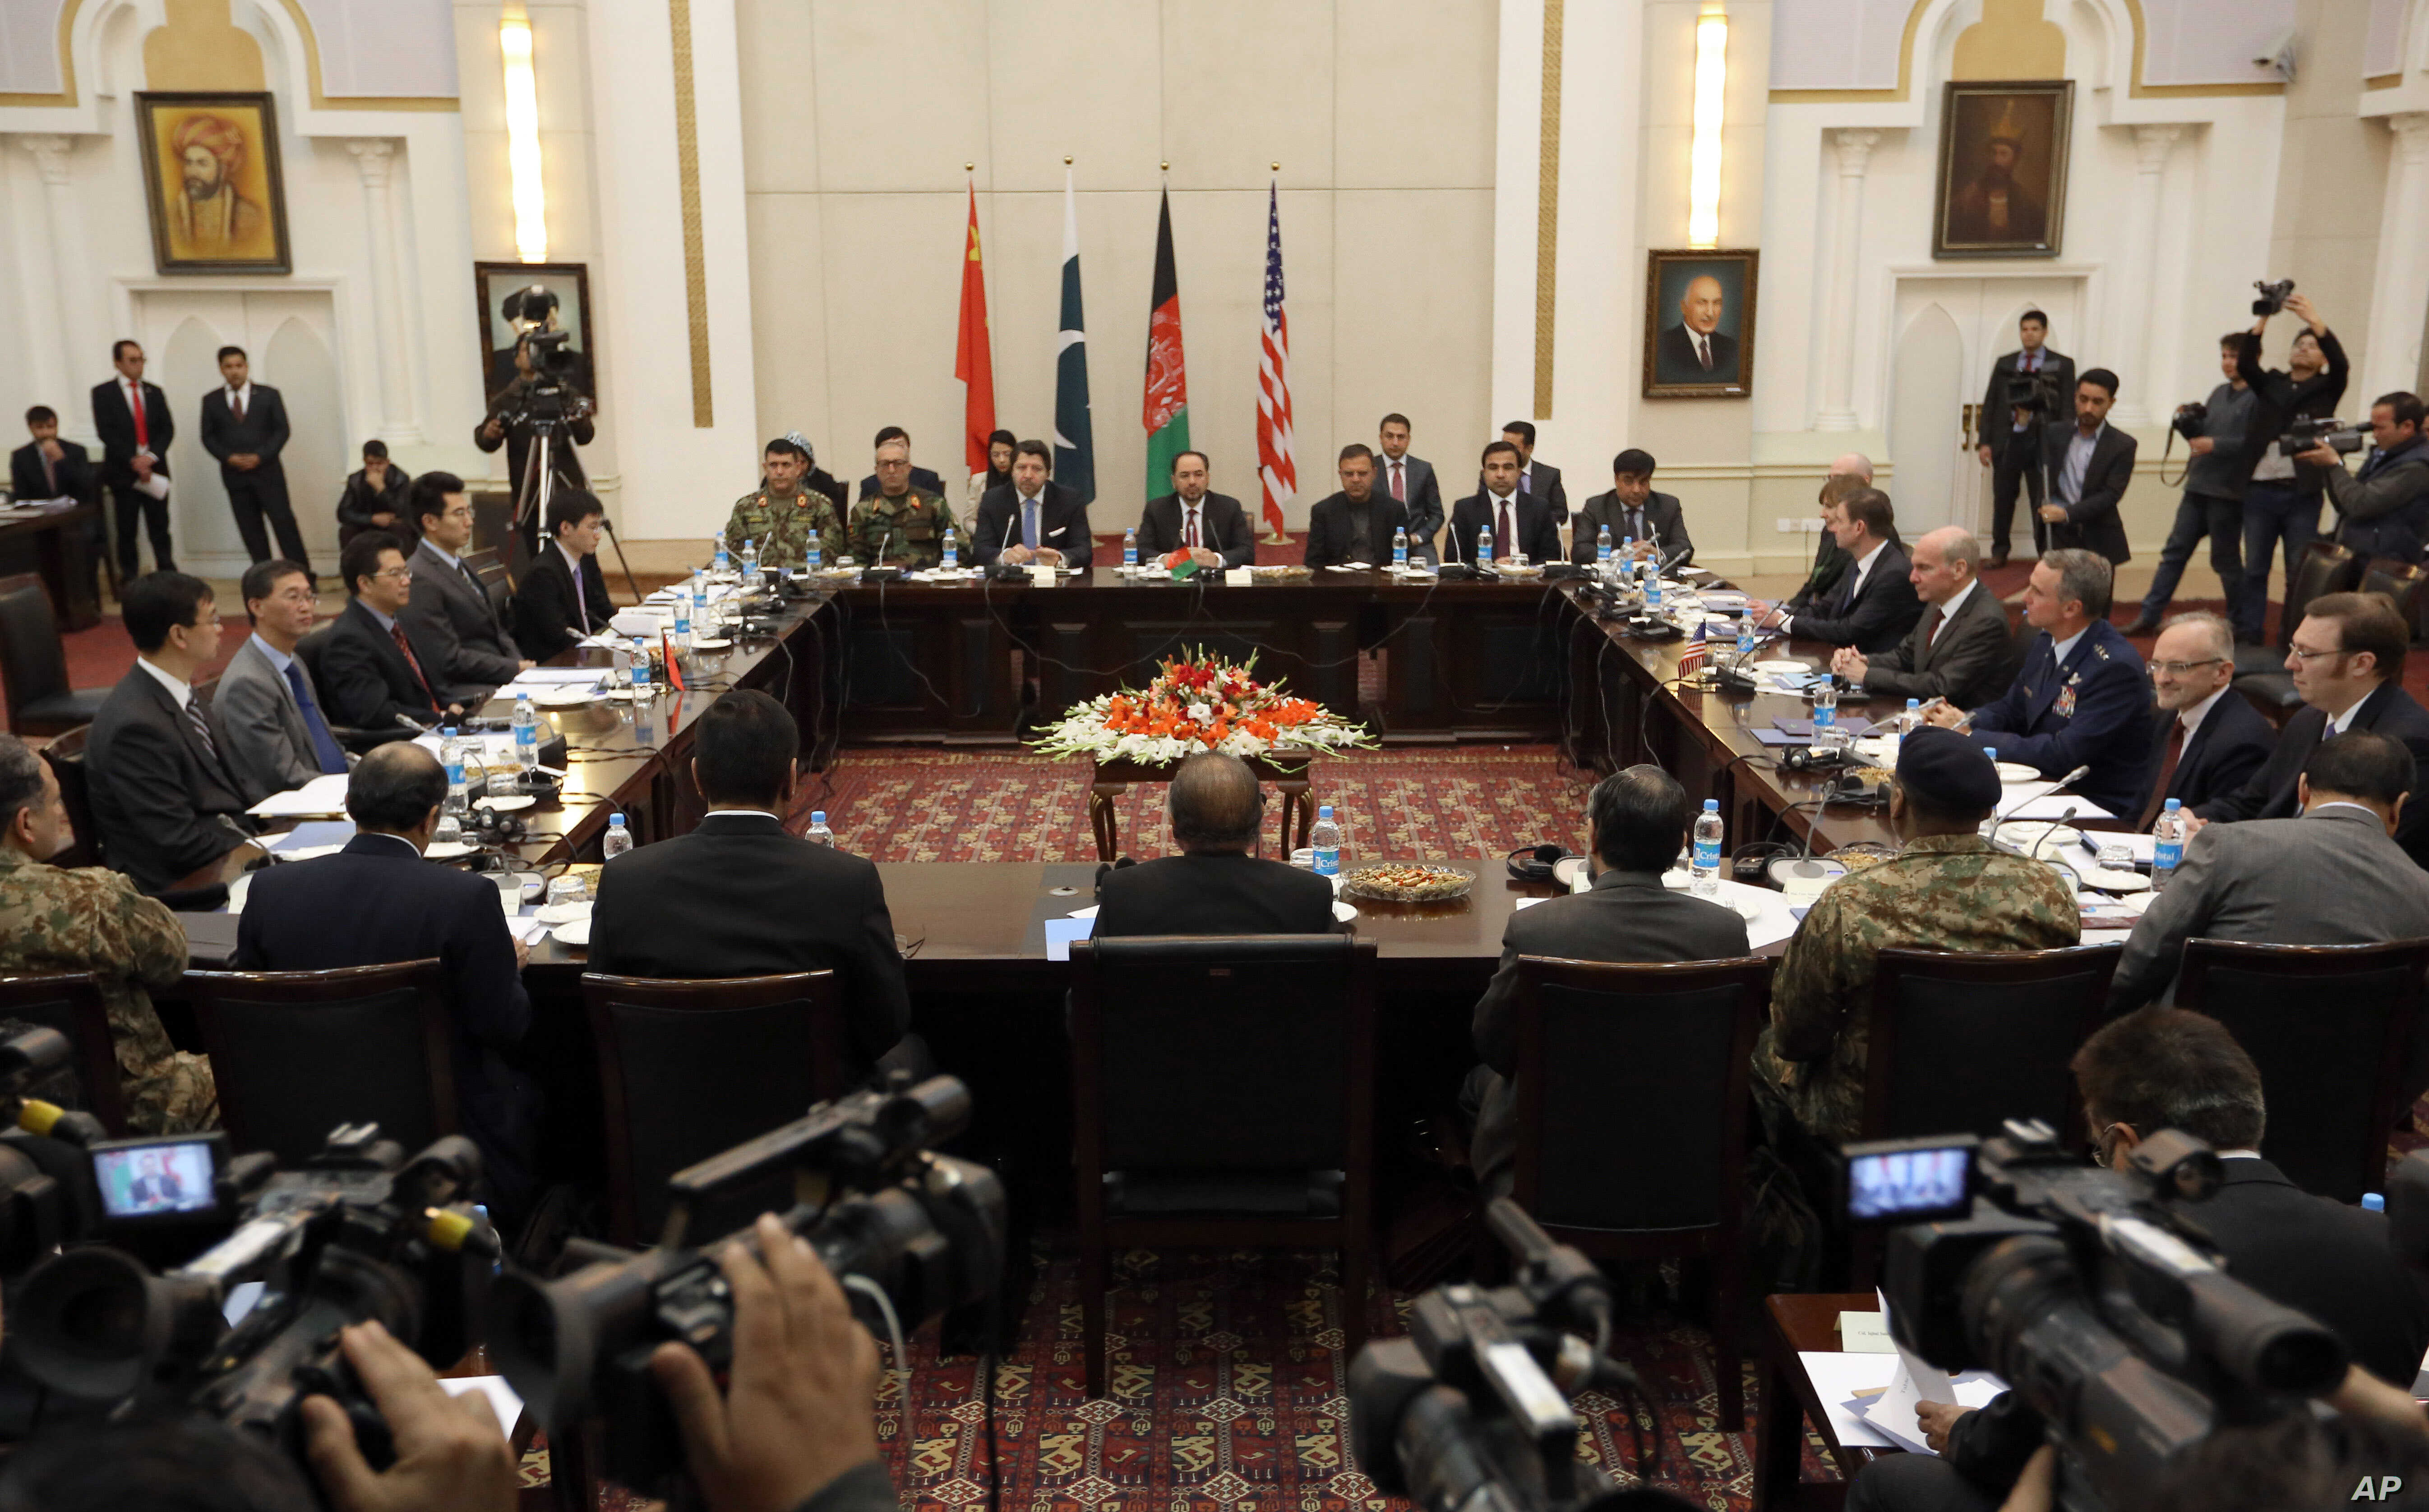 Delegations from Afghanistan, Pakistan, The United States of America and China discuss a road map for ending the war with the Taliban at the Presidential Palace in Kabul, Afghanistan, Monday, Jan. 18, 2016.